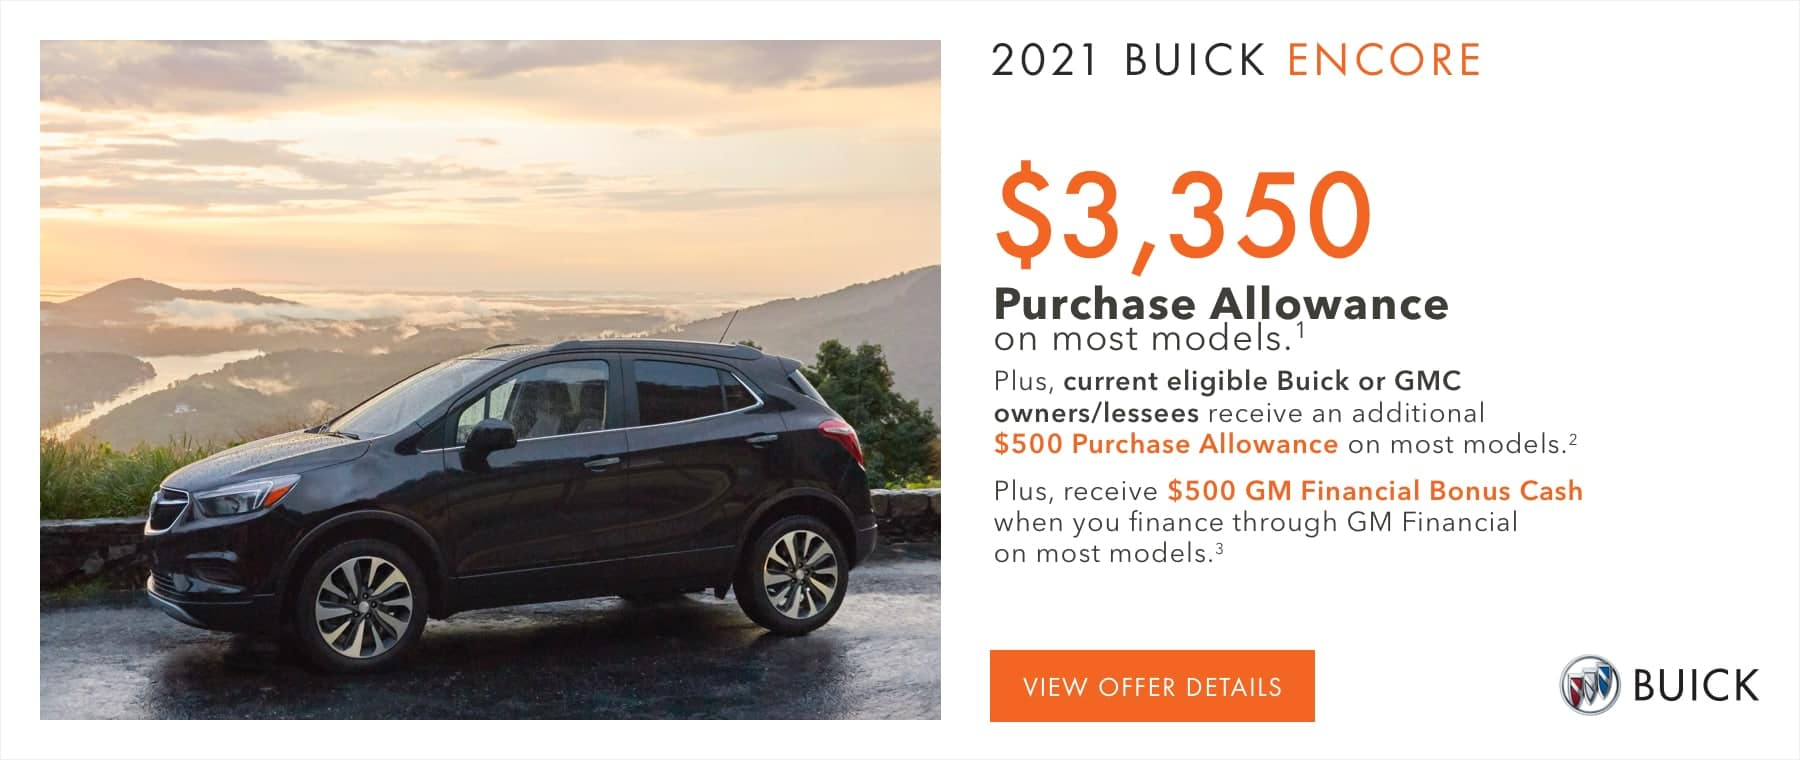 $3,350 Purchase Allowance on most models.1 Plus, current eligible Buick or GMC owners/lessees receive an additional $500 Purchase Allowance on most models.2 Plus, receive $500 GM Financial Bonus Cash when you finance through GM Financial on most models.3